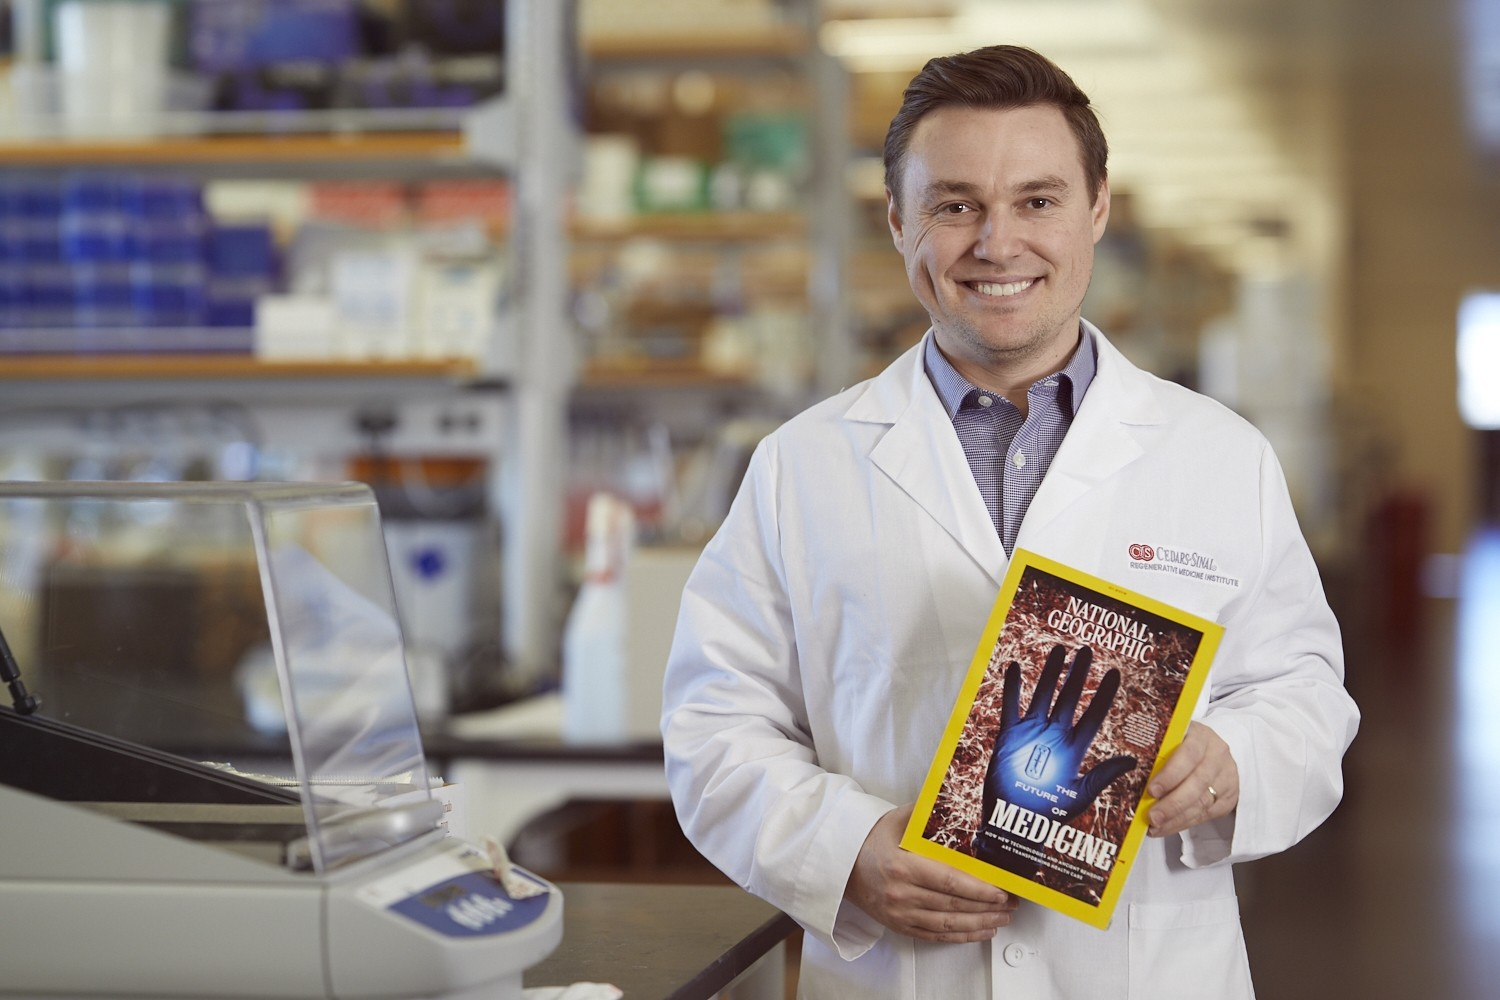 Samuel Sances, PhD, with the National Geographic issue that profiled the work of the Board of Governors Regenerative Medicine Institute. Photo by Cedars-Sinai.